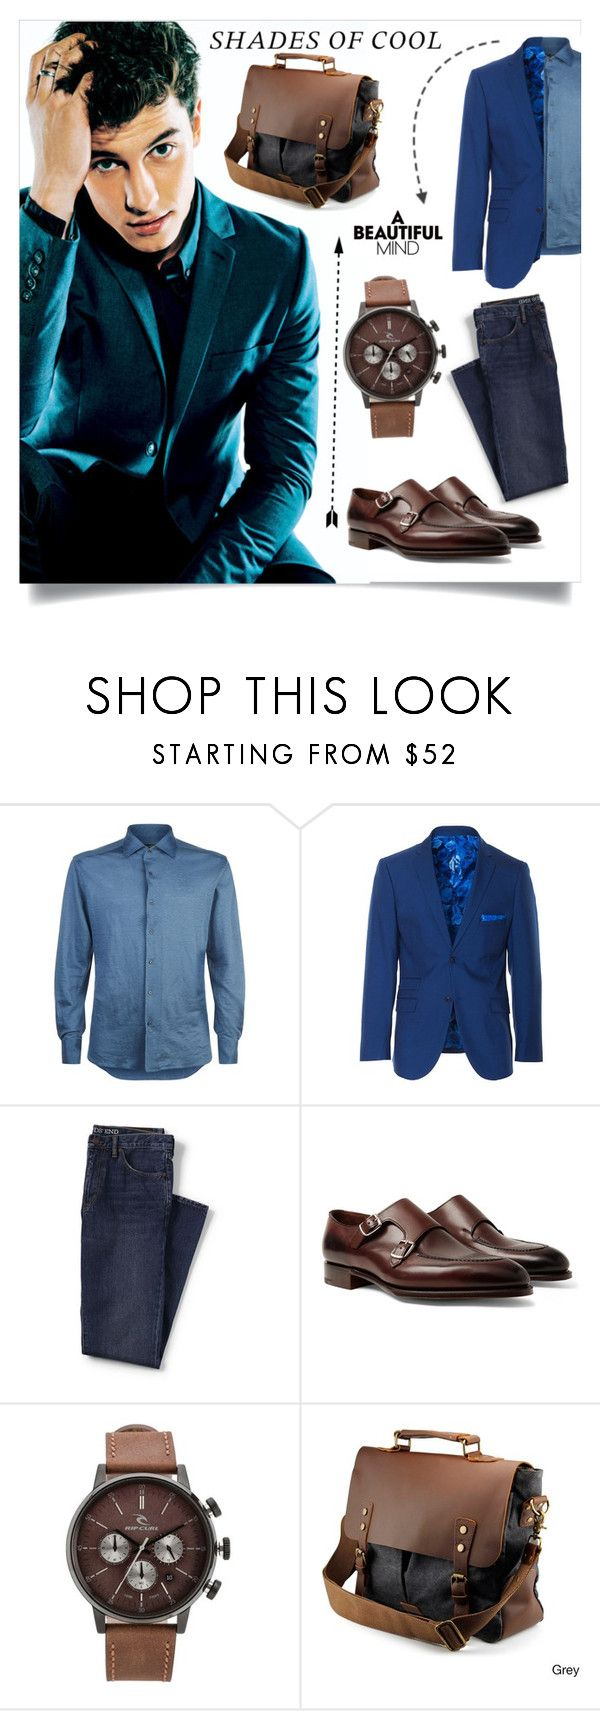 """""""Calm and Collected"""" by thedarkenedprince ❤ liked on Polyvore featuring Corneliani, Paisley & Gray, Lands' End, Edward Green, Rip Curl, Gearonic, men's fashion and menswear"""